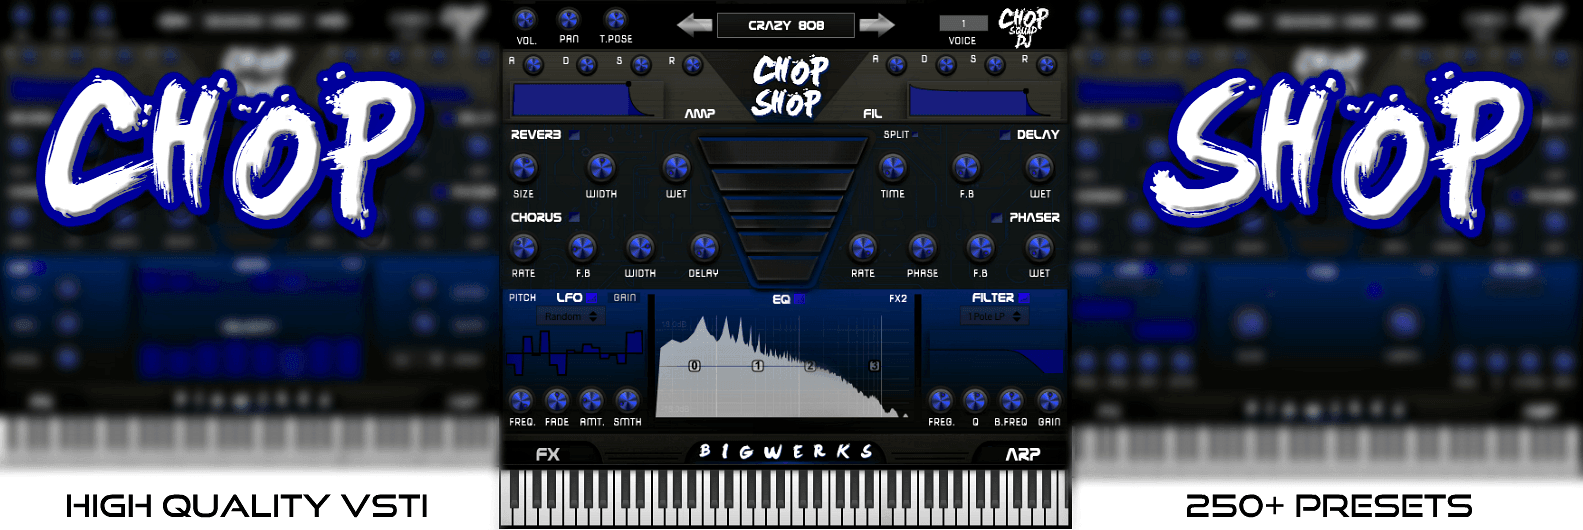 Chop Shop VSTI Plugin - #1 plugin for Trap|Hip-hop|House Music 2